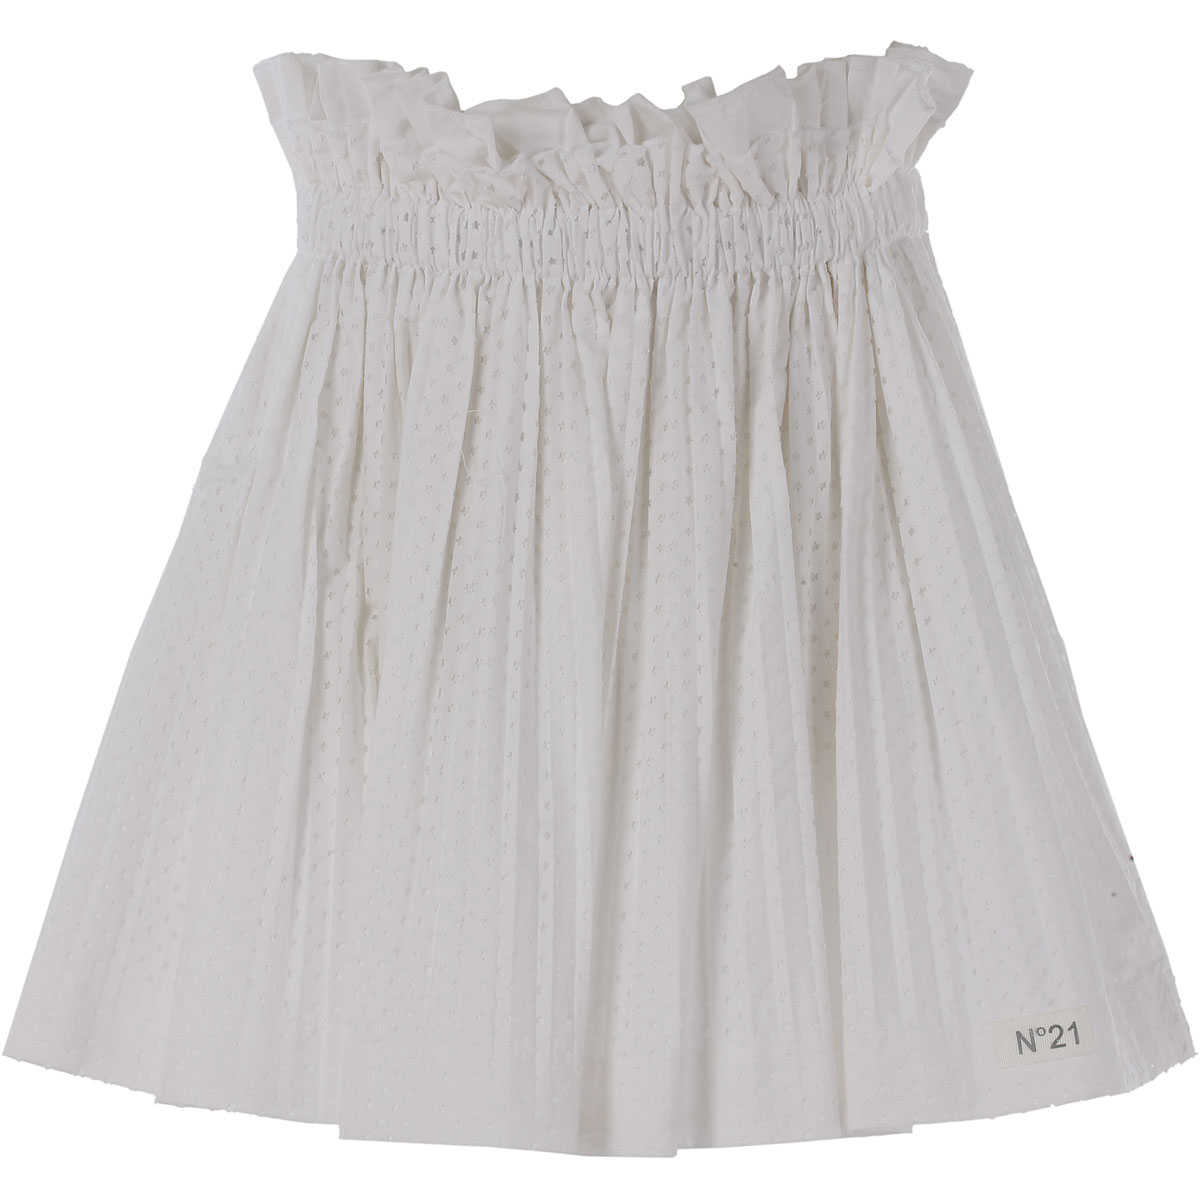 NO 21 Kids Skirts for Girls On Sale in Outlet, White, Cotton, 2019, 30 (6 Years) 36 (9 Years) 42 (12 Years) 44 (14 Years)